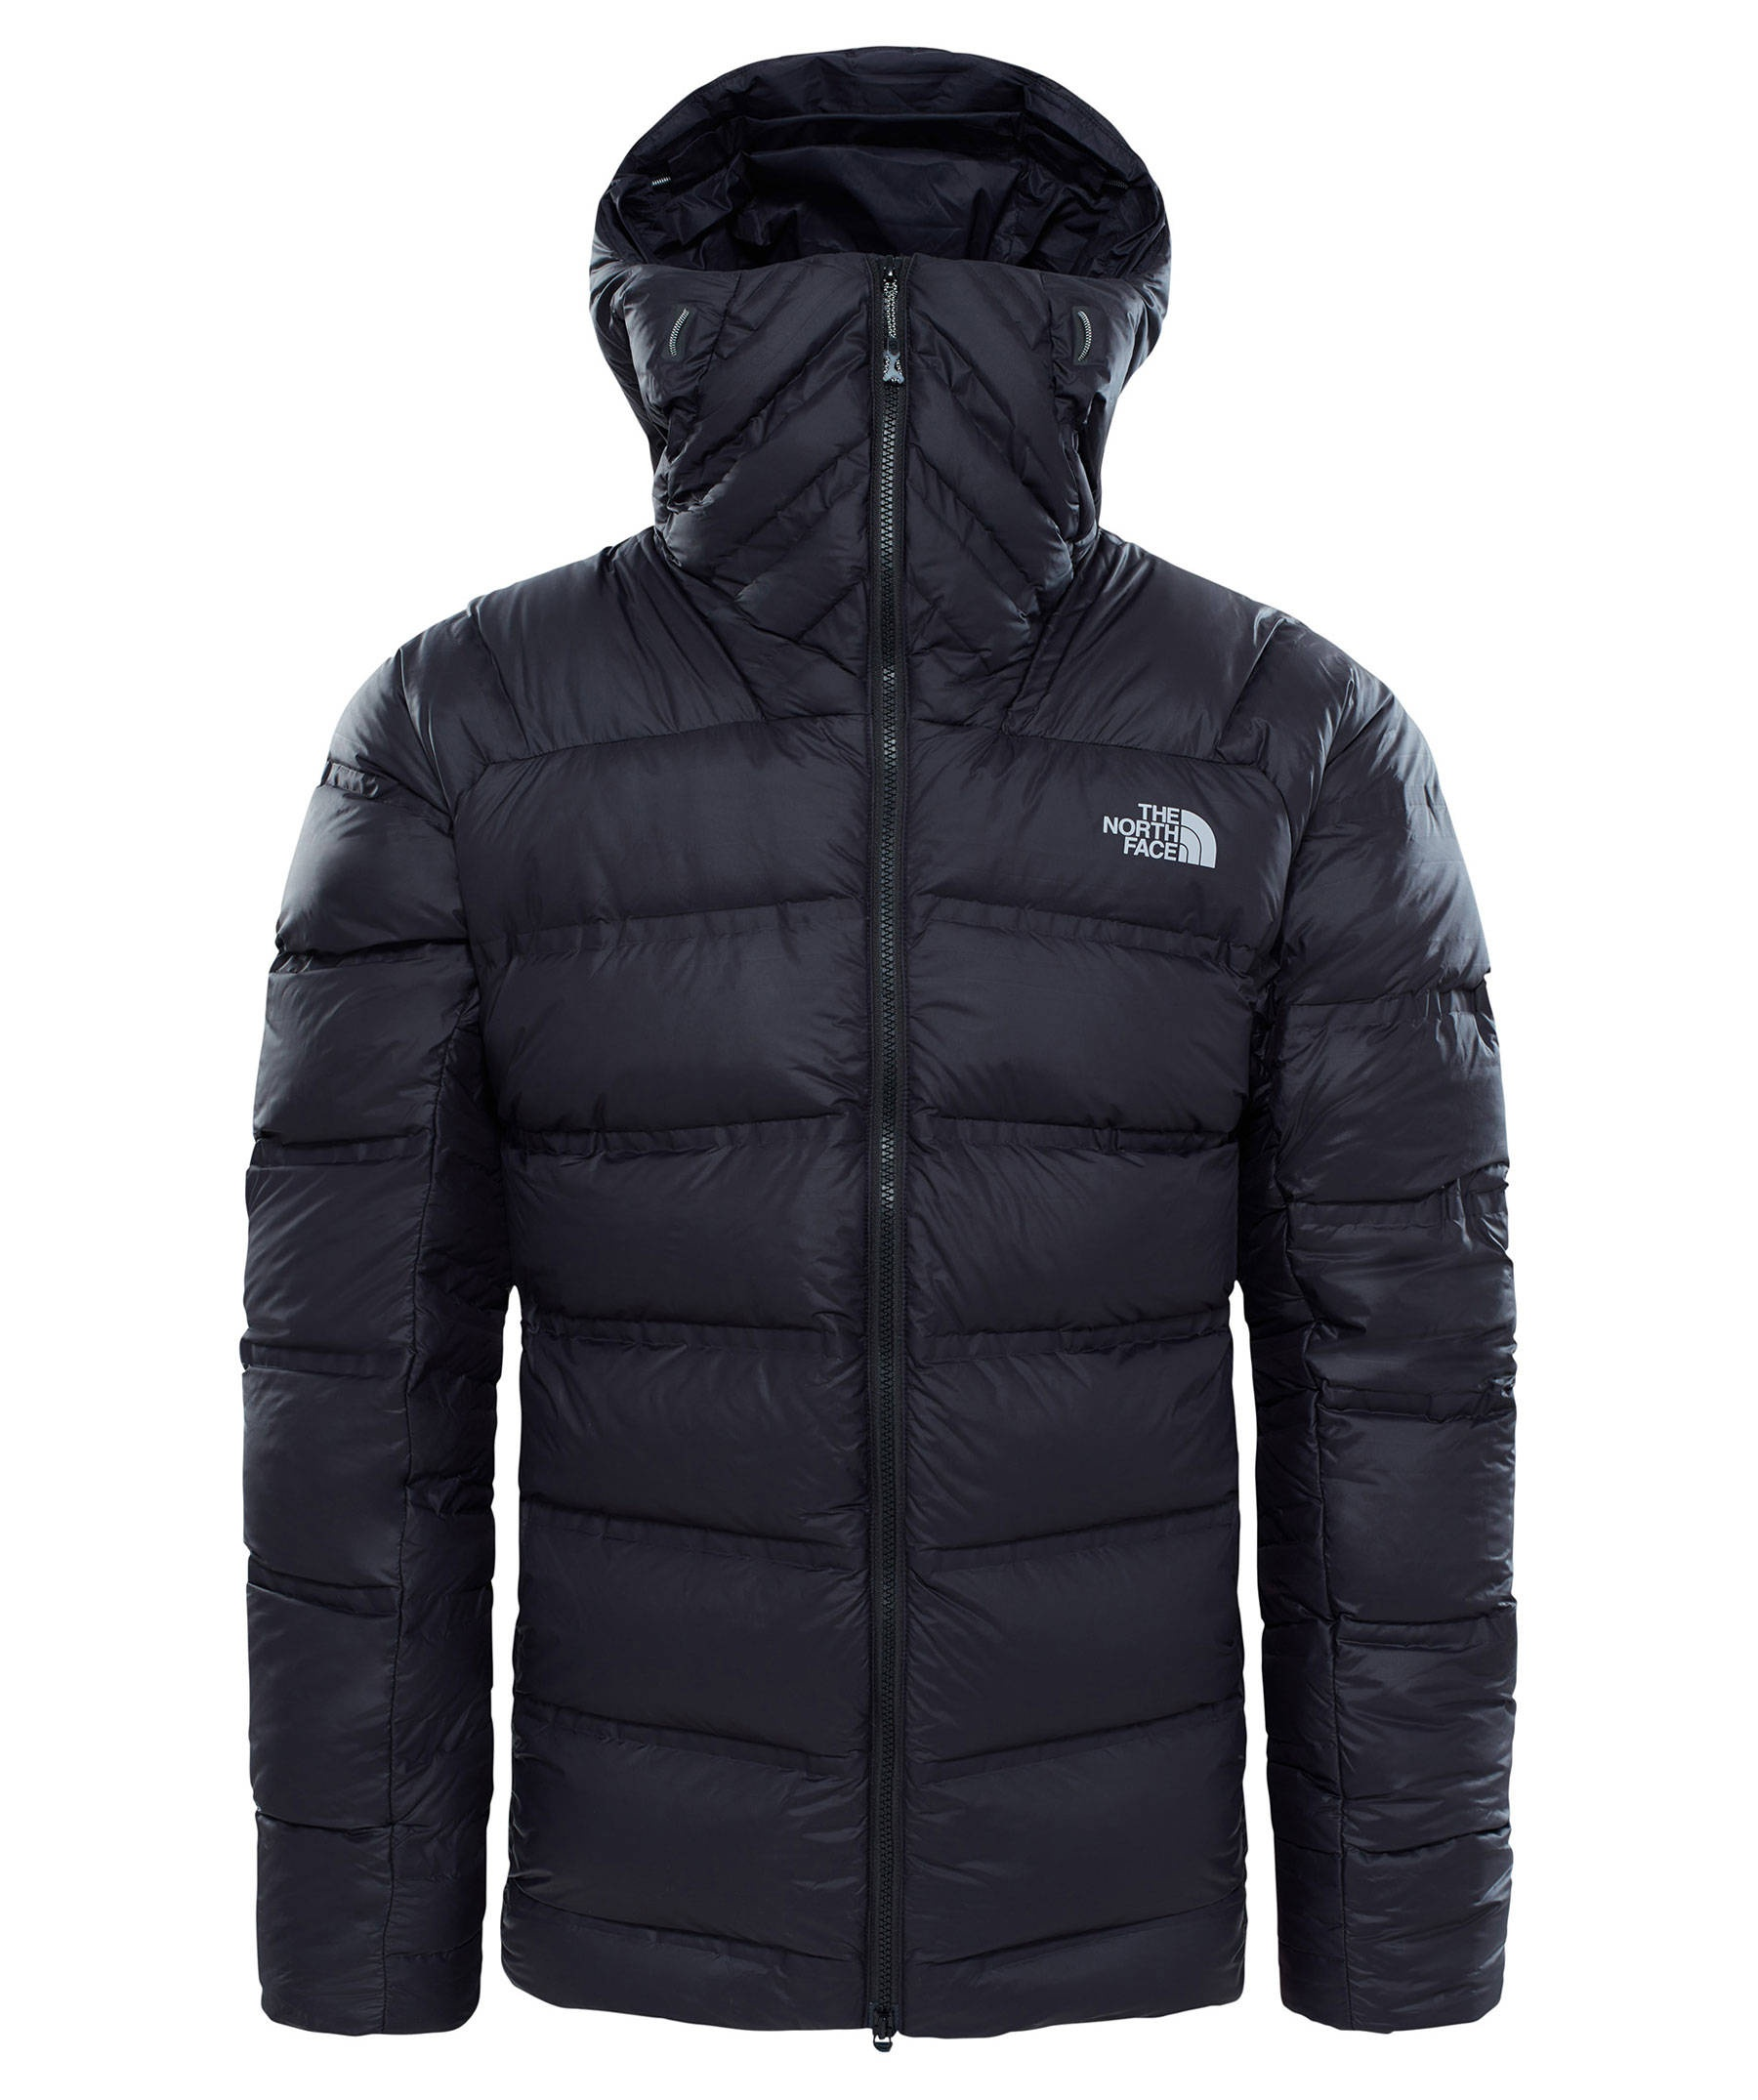 The North Face Herren Outdoor-Jacke